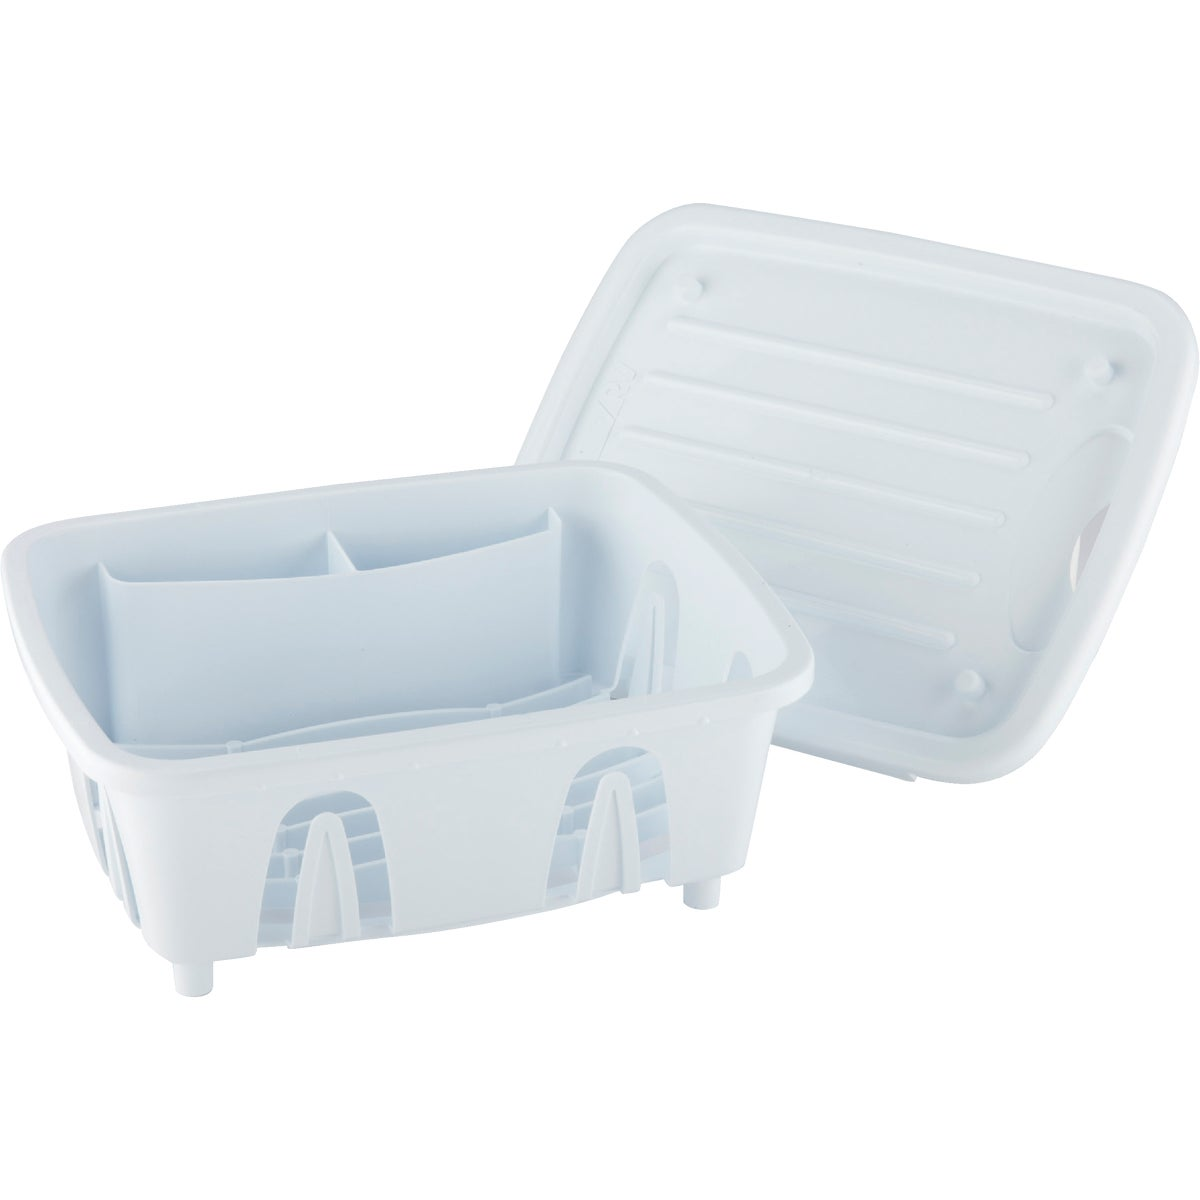 MINI DISH DRAINER - 43511 by Camco Mfg.